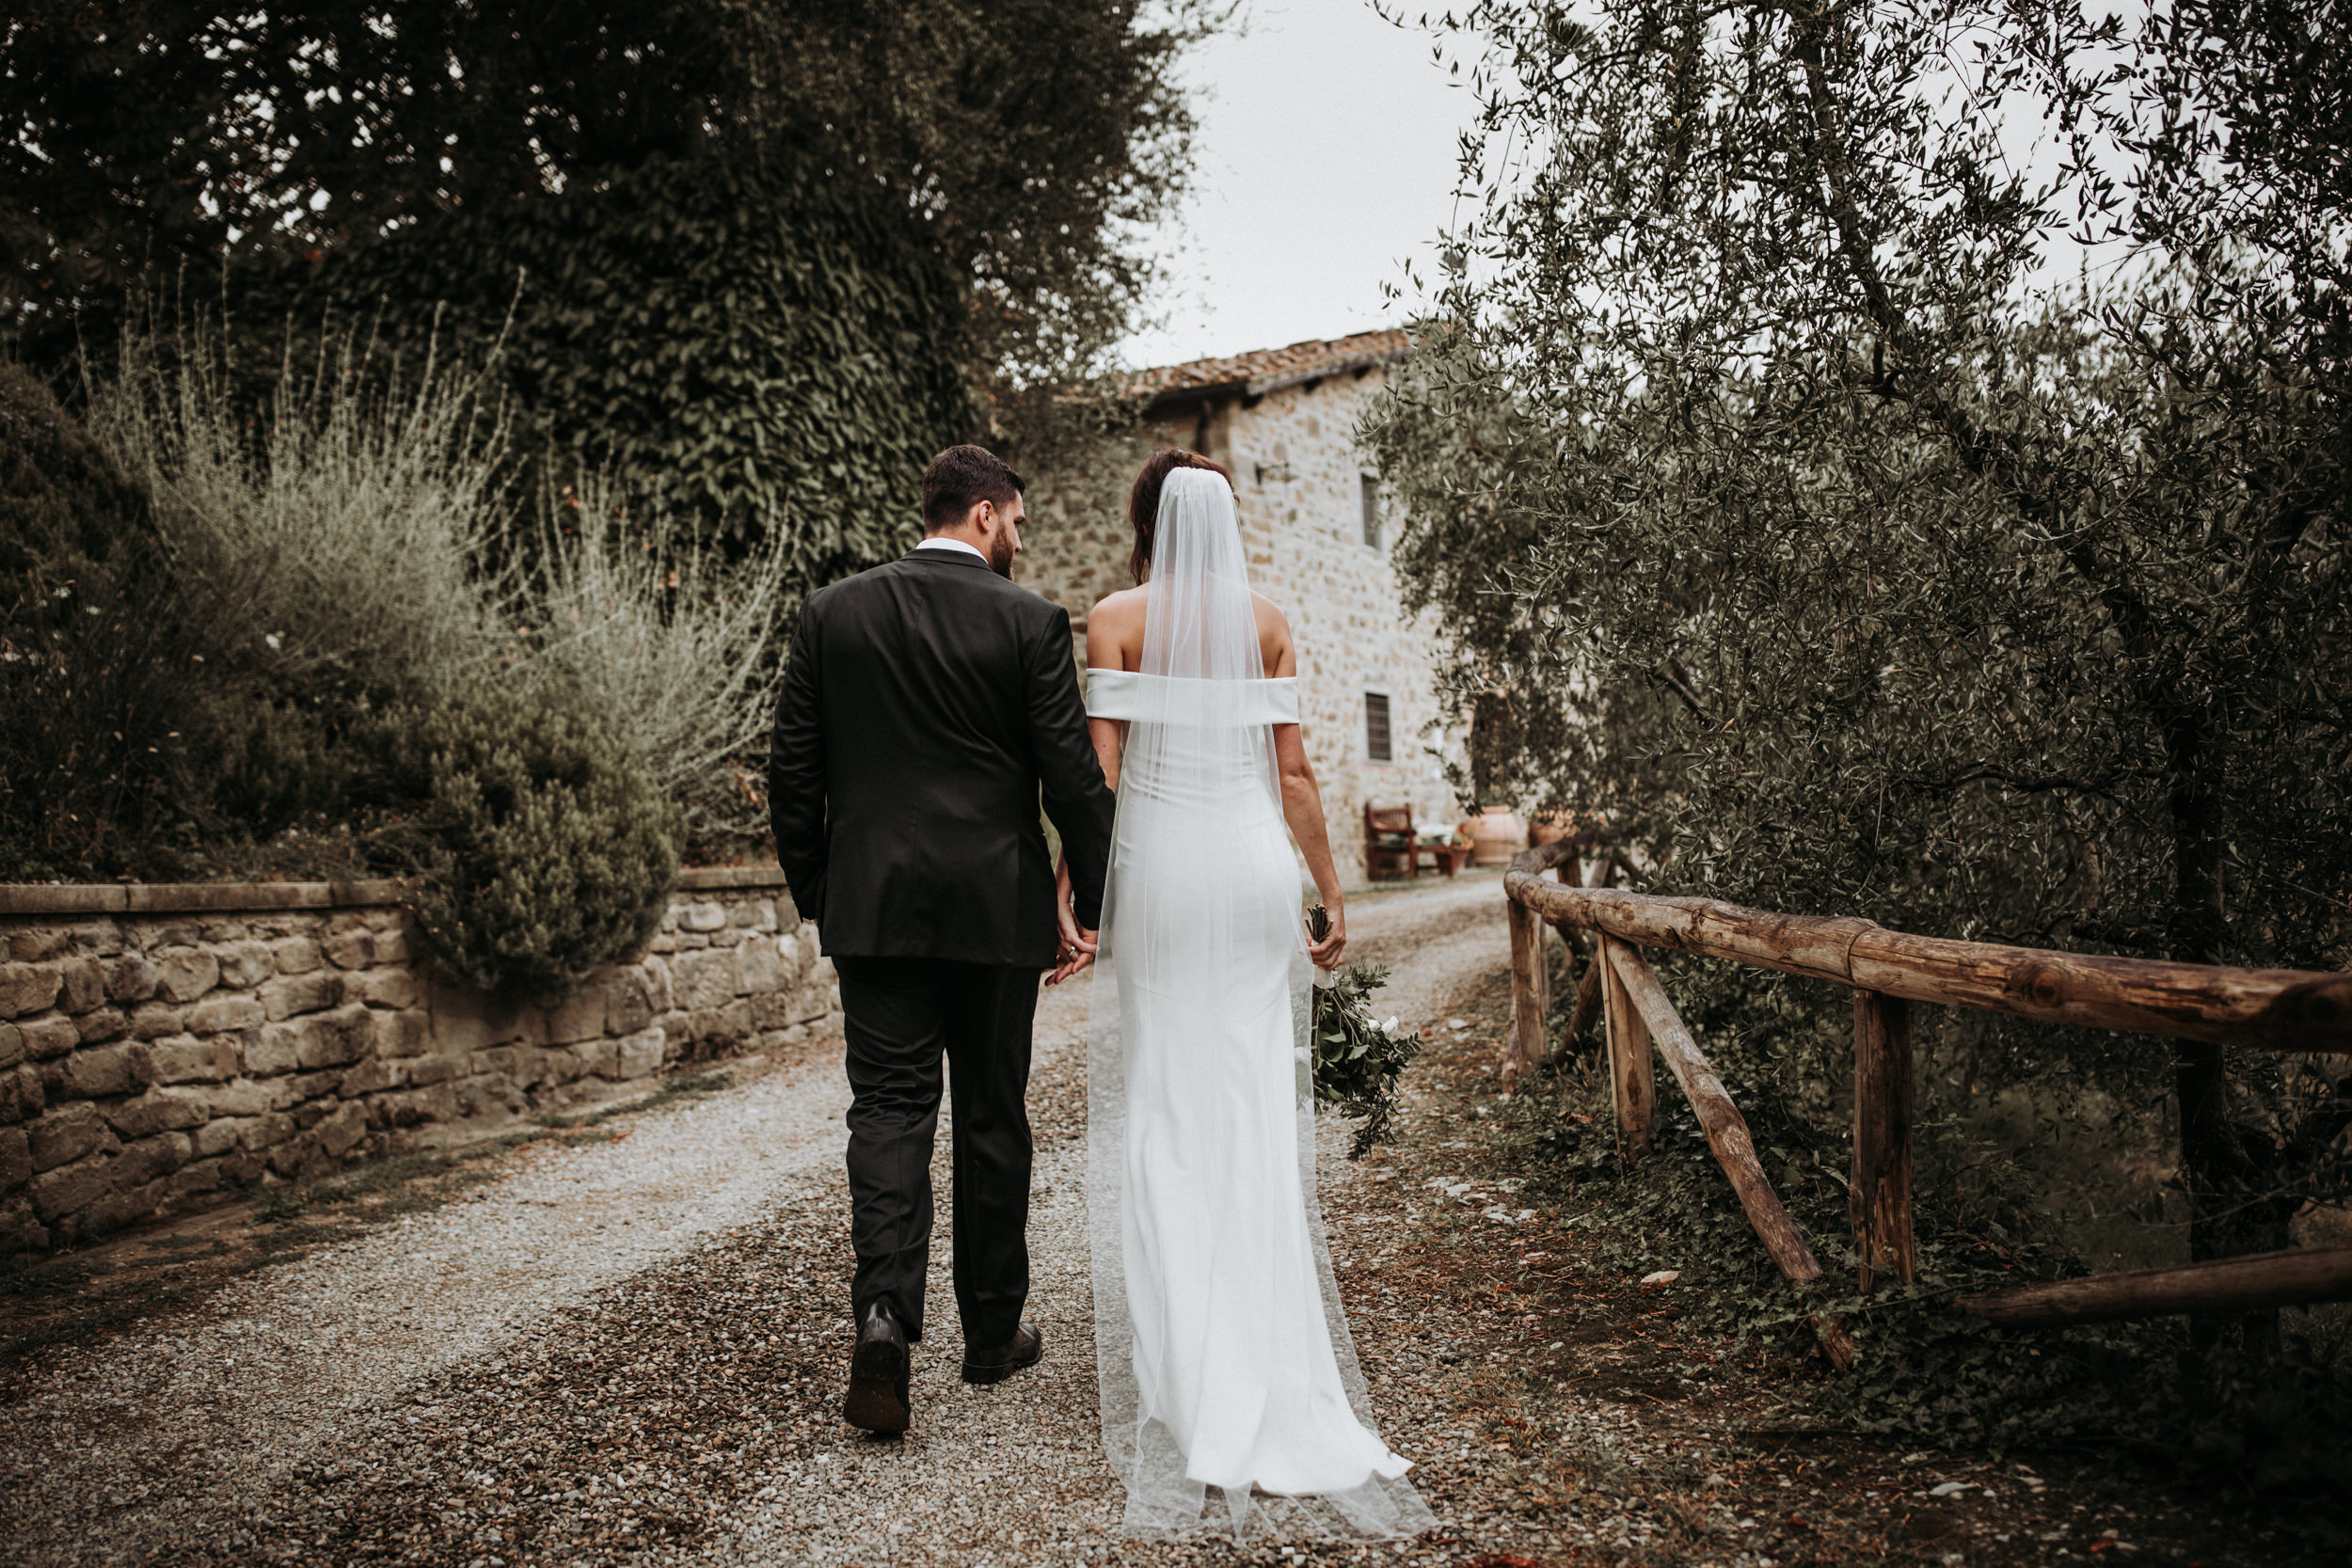 dm_photography_KW_Tuscanyweddingday_299